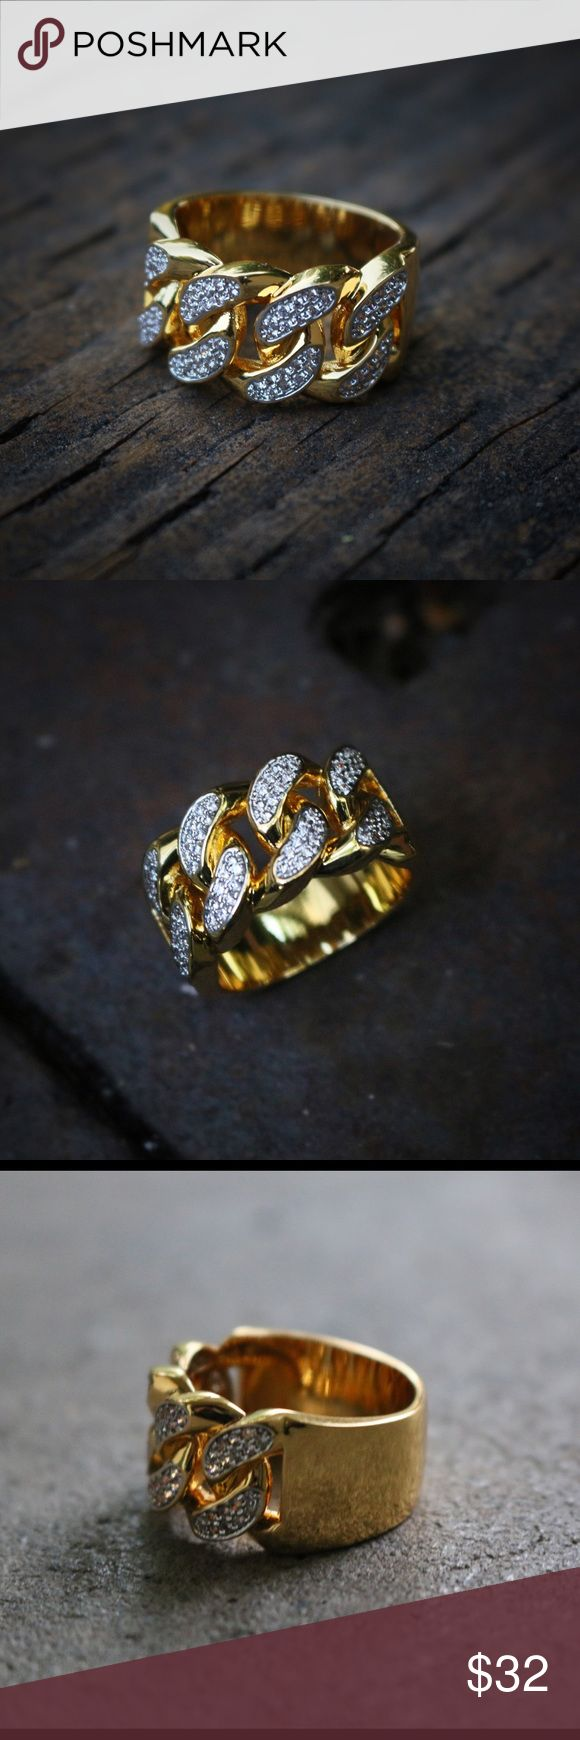 best jewelry images on pinterest rings pinky rings and men